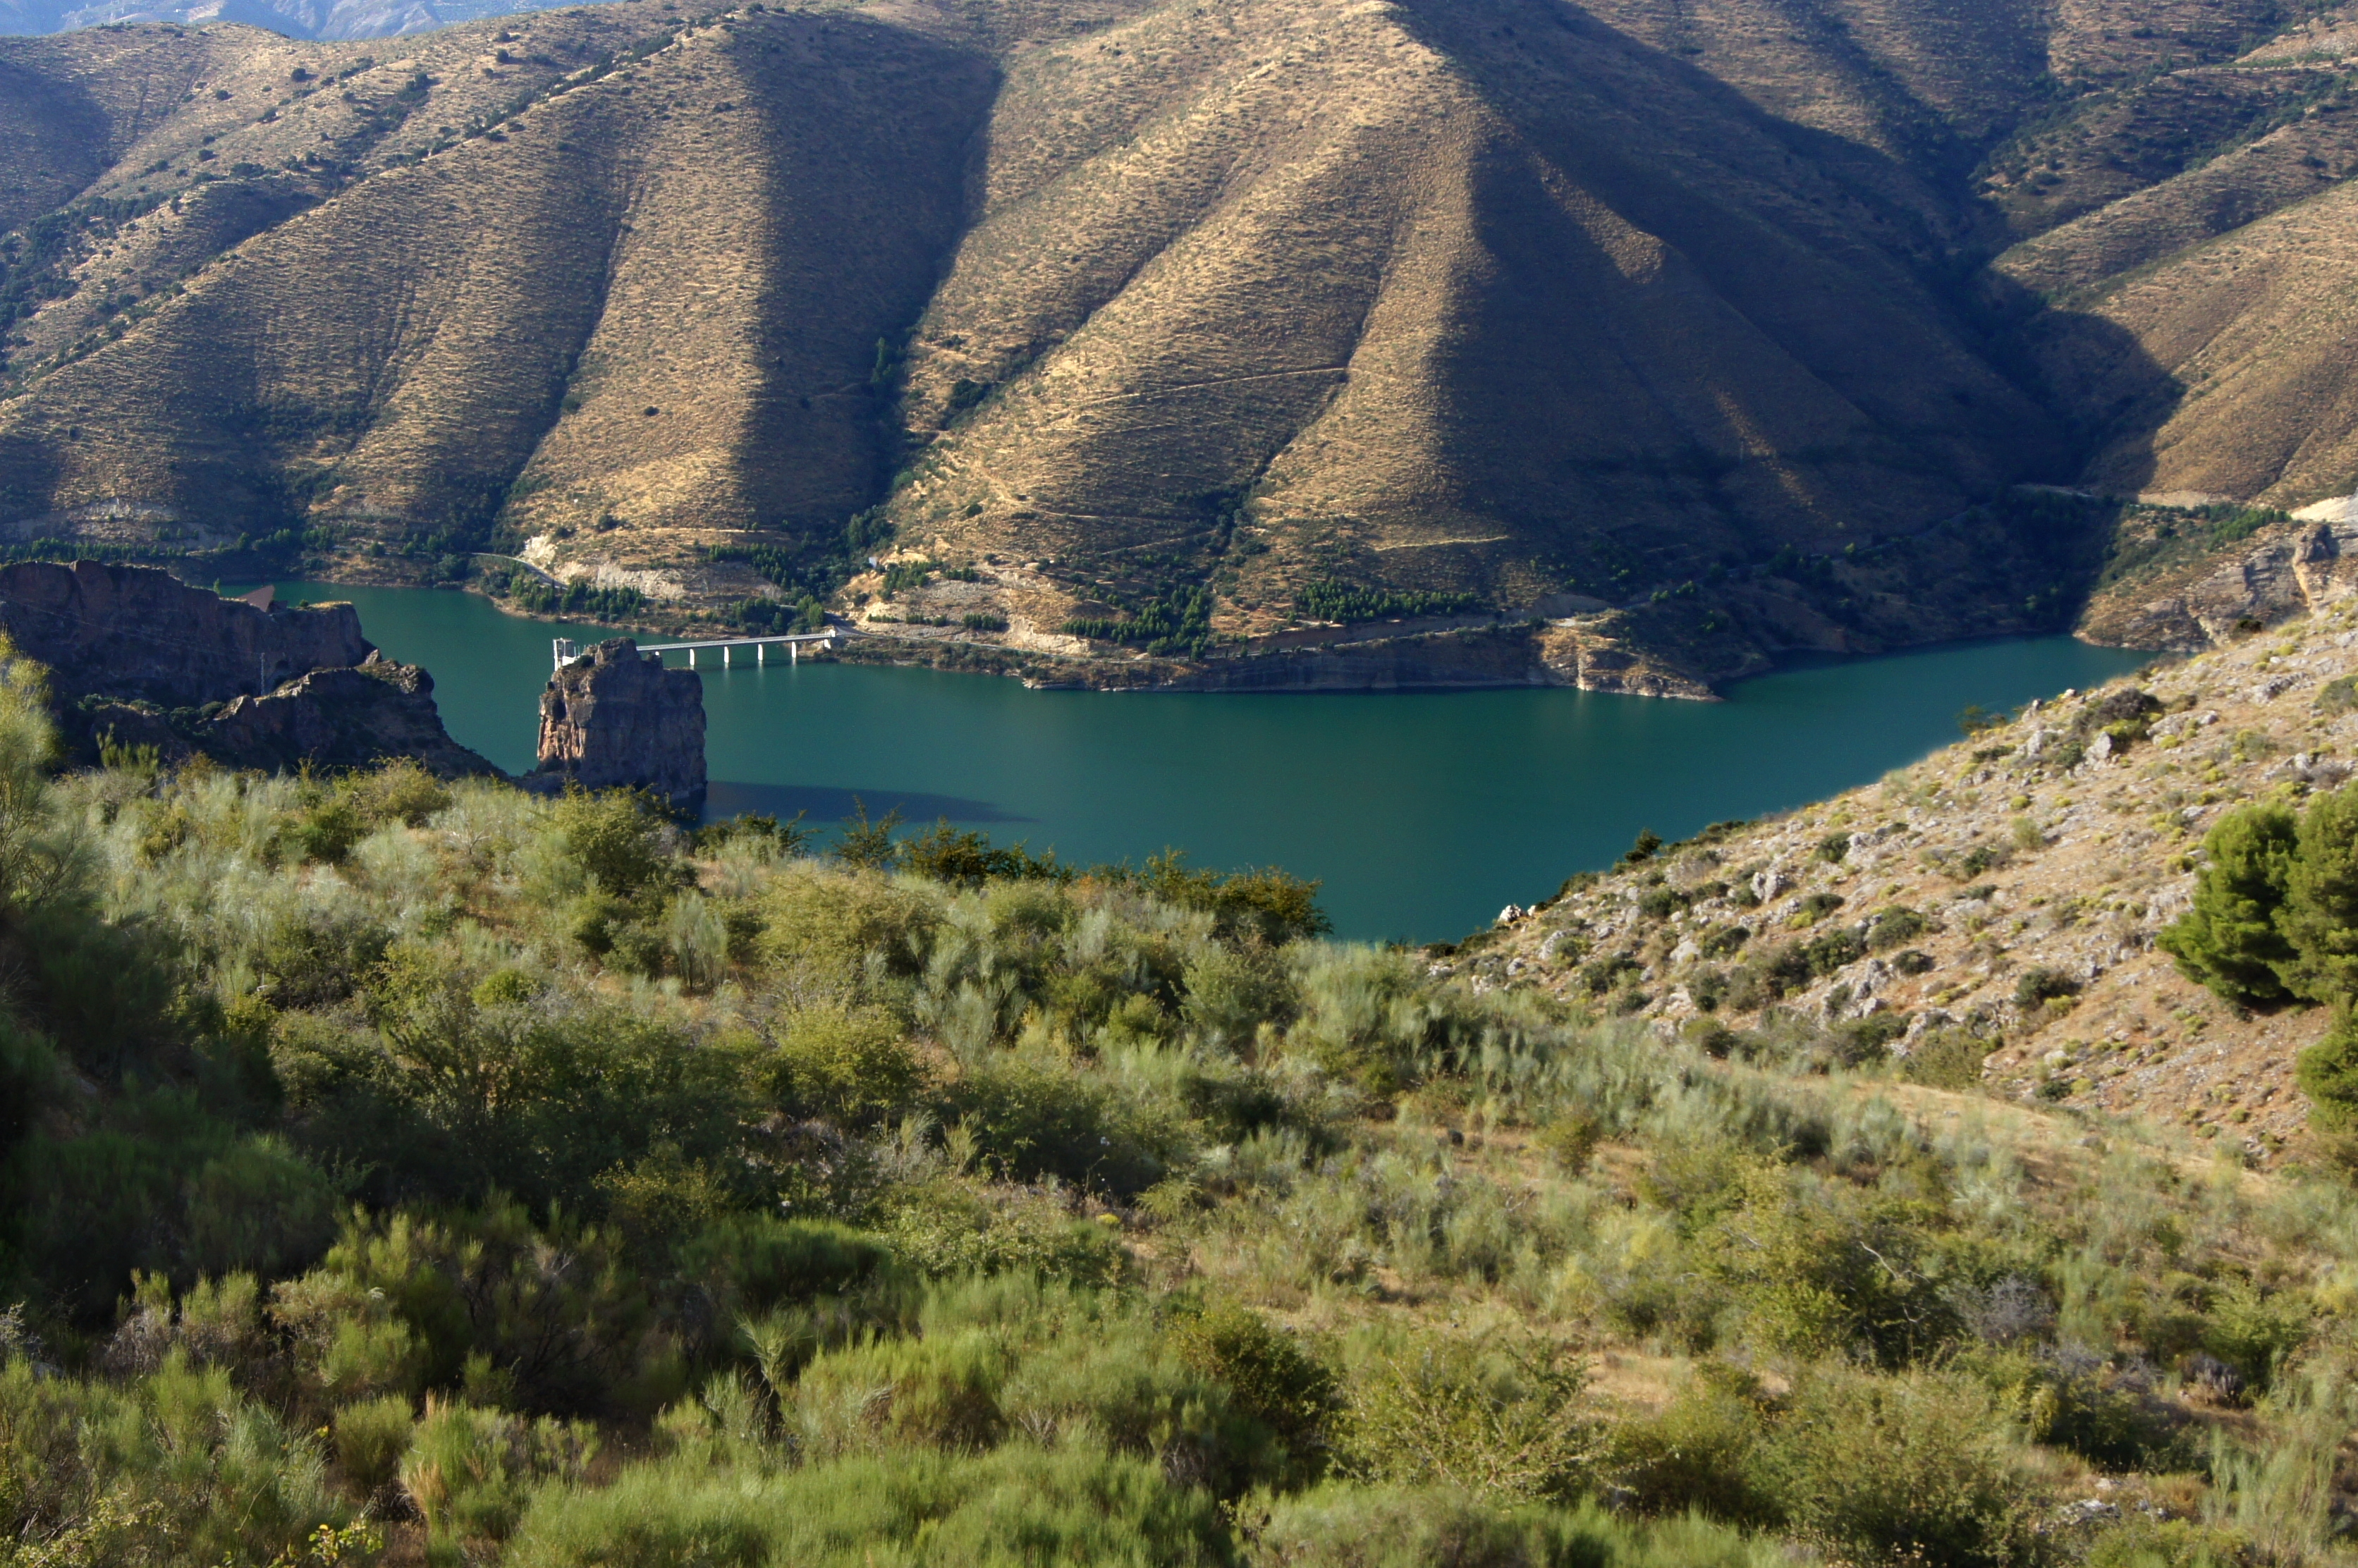 File:Embalse de Canales Rio Genil 2.jpg.